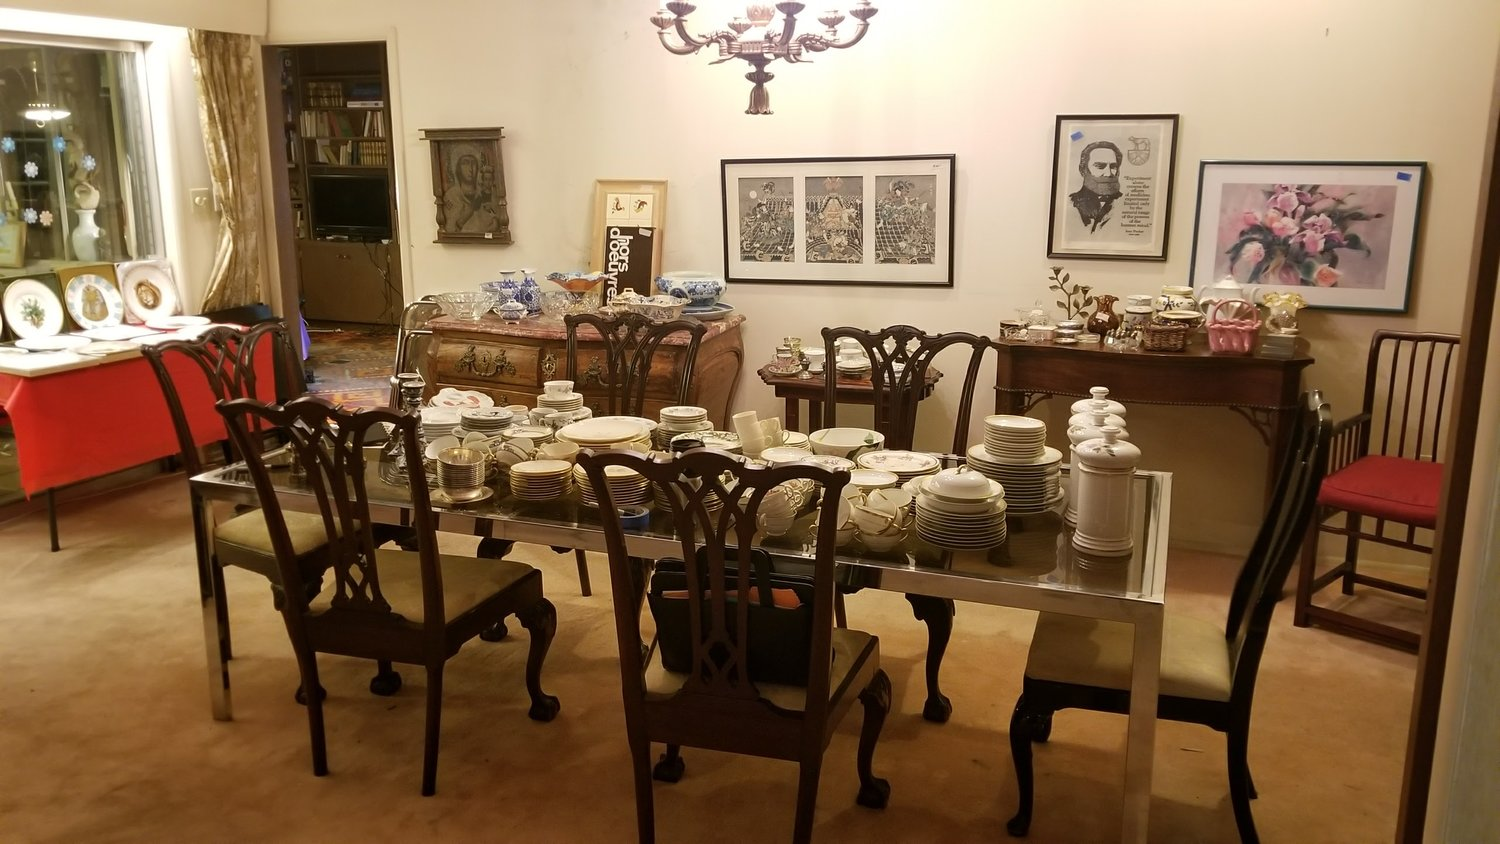 Eclectic Sale In Hilltop Sterling Silver Antique Furniture Tons Of Art  African & Santos Items Books - Sale In Hilltop Sterling Silver Antique Furniture Tons Of Art